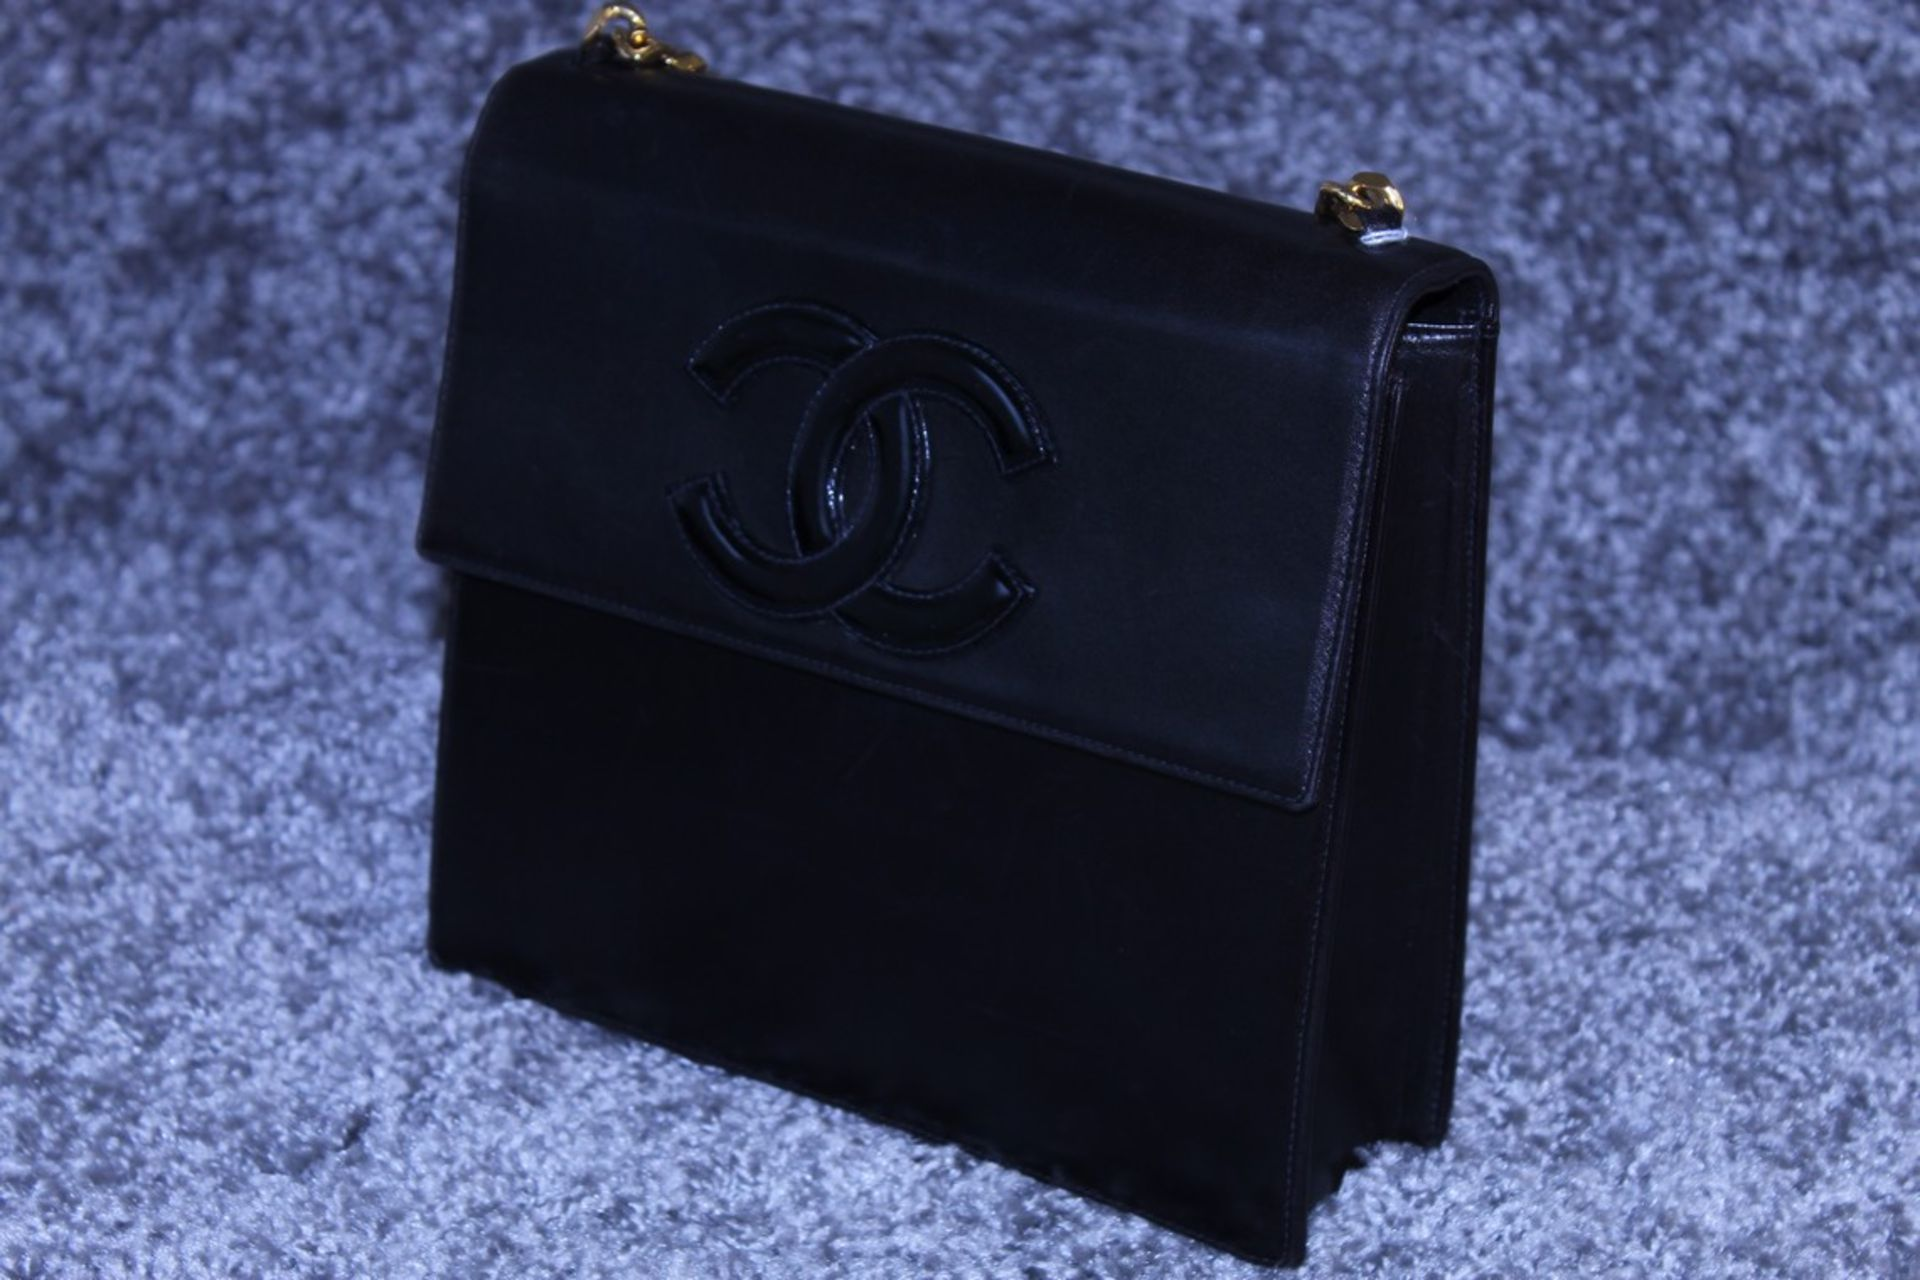 RRP £2000 Chanel Tall Logo Flap Chain Tote Shoulder Bag In Black Leather With Gold Chain Handles - Image 3 of 5